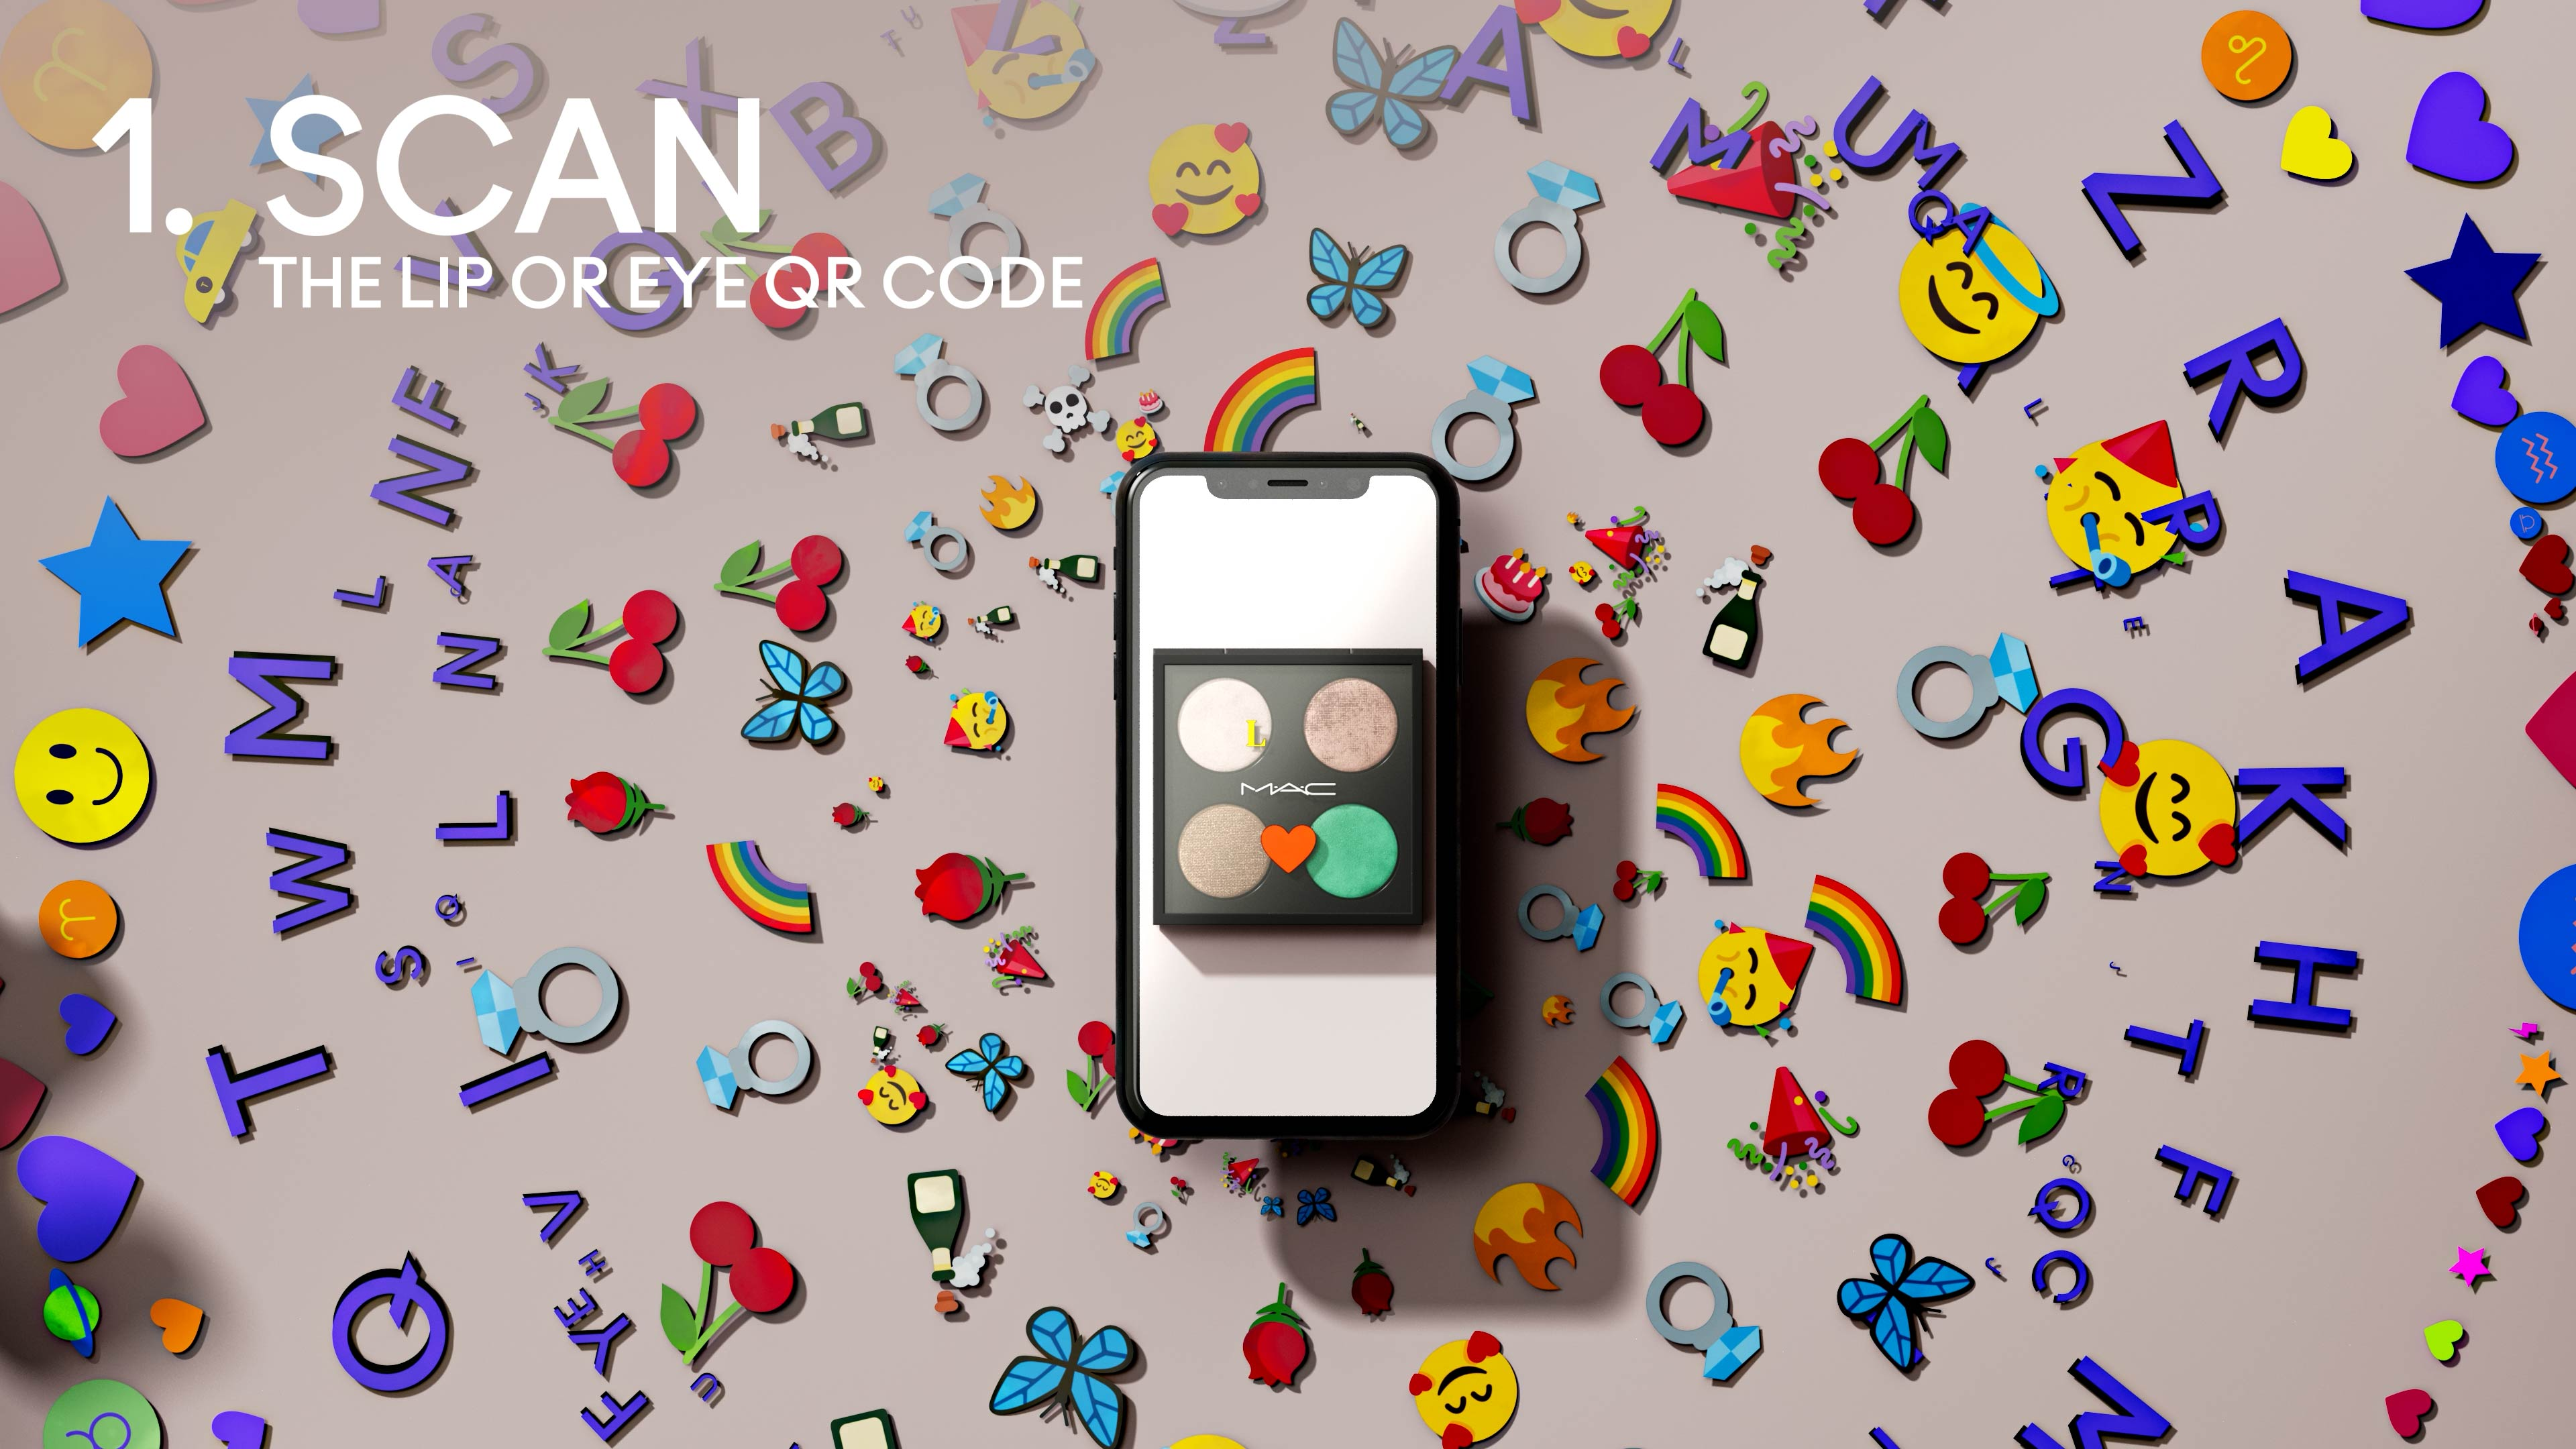 3D Motion design with colored emojis behind a phone